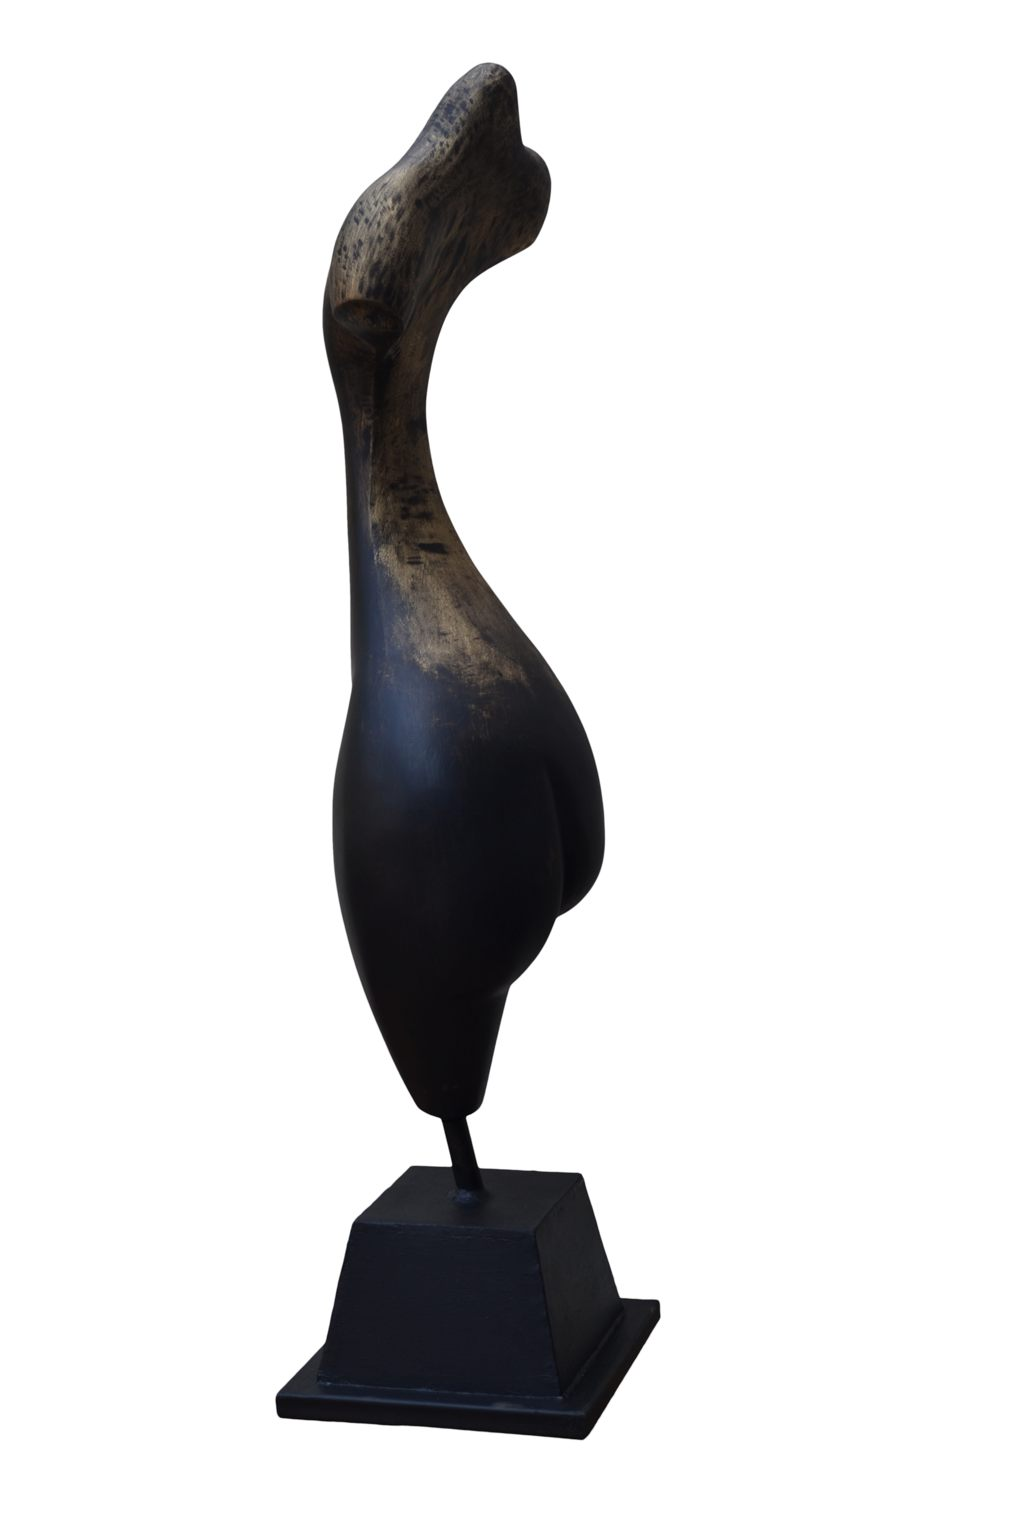 The Seen and Unseen (Metal Cast) Height 3ft